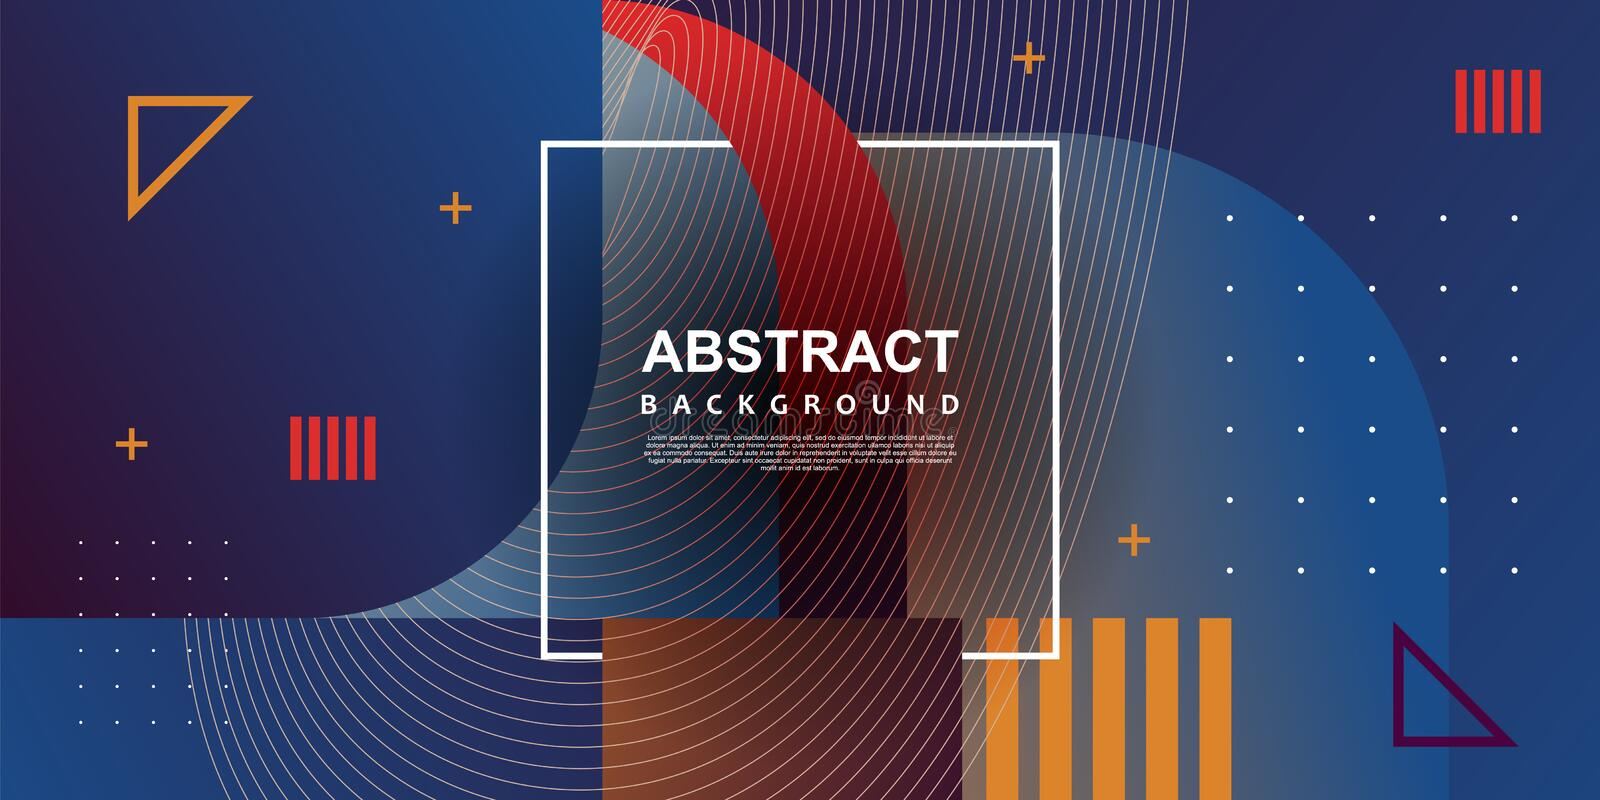 Geometric trendy design background abstract memphis modern design royalty free stock images